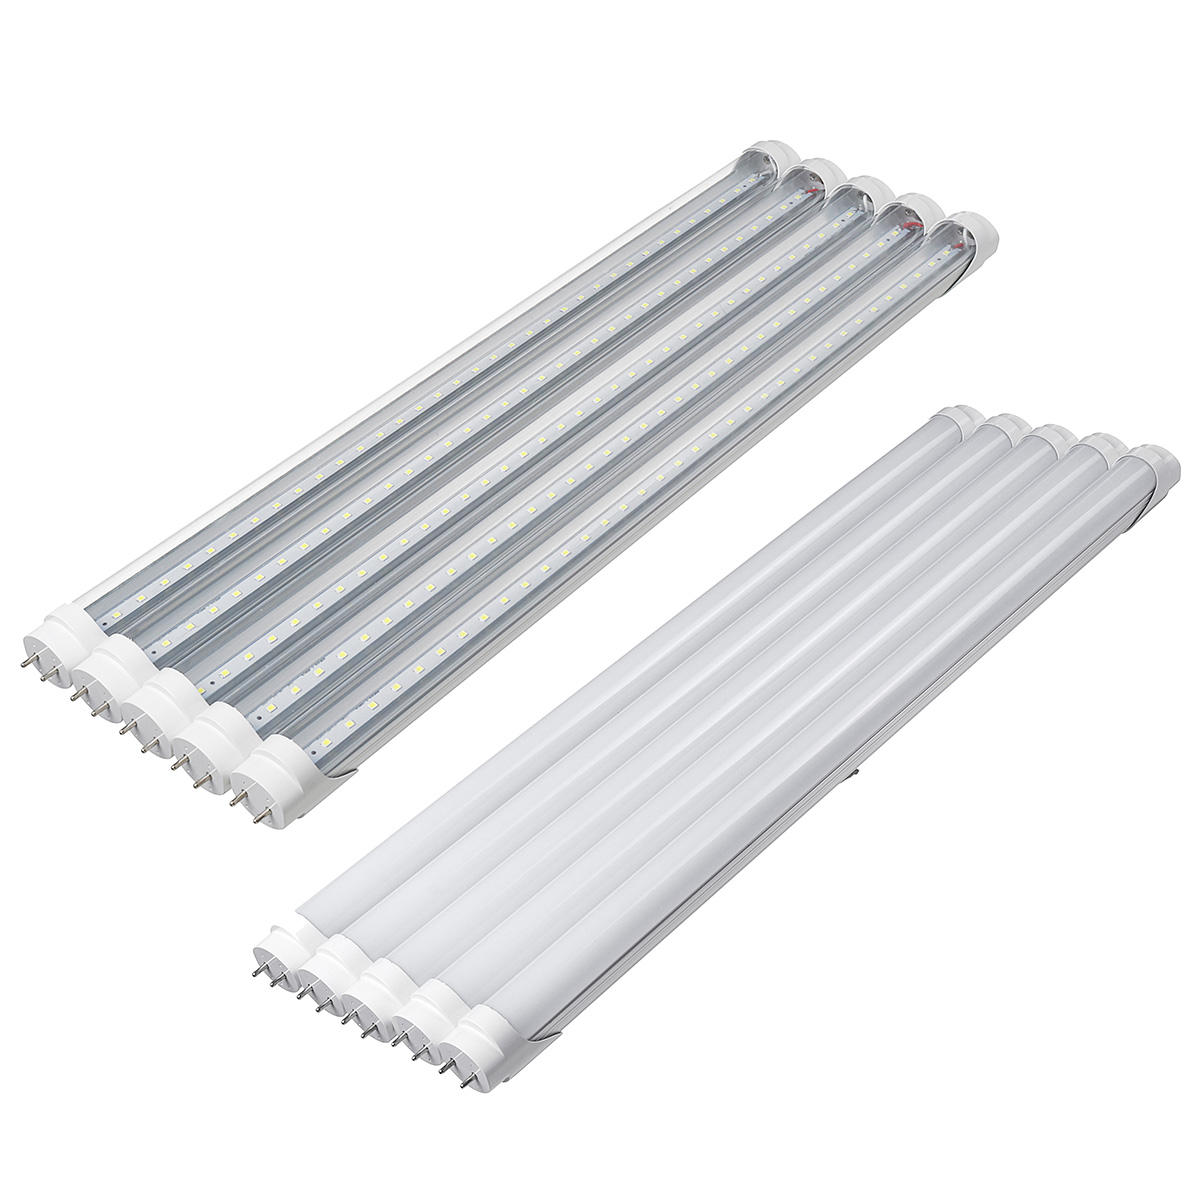 5PCS AC85-265V 50cm T8 G13 8W SMD2835 Fluorescent Bulbs 36 LED Tube Light for Indoor Home